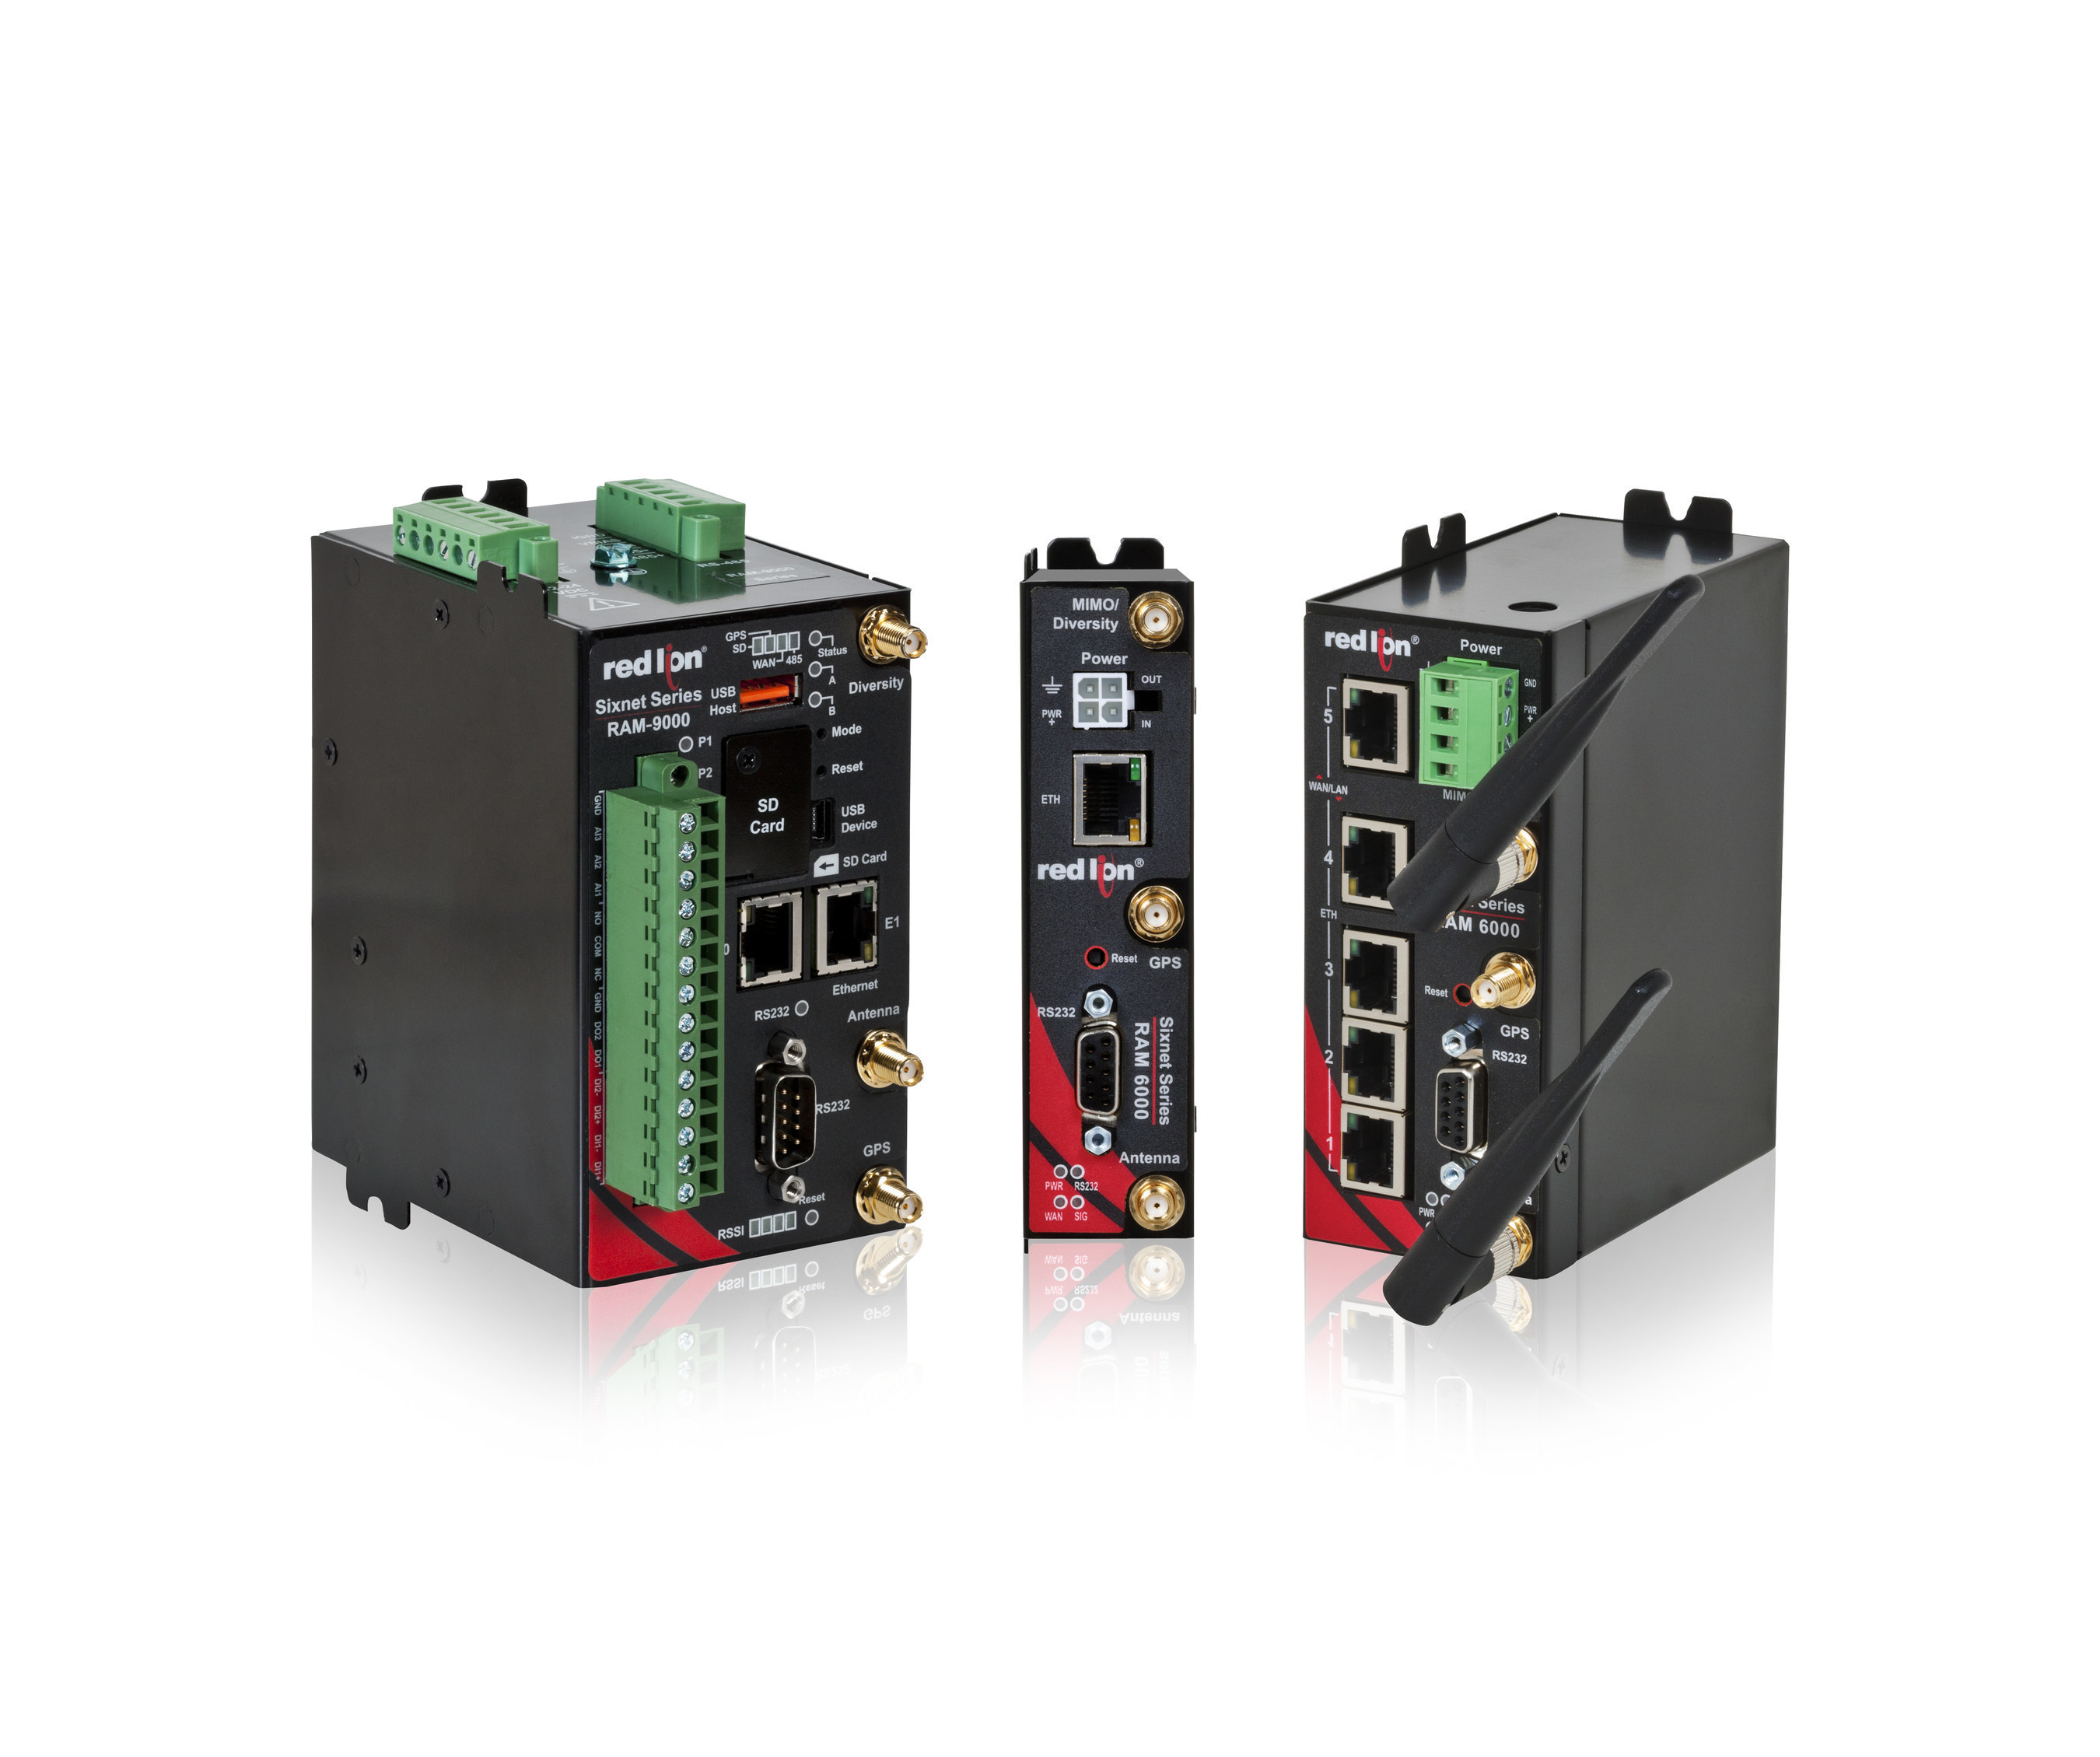 Red Lion's RAM cellular automation devices now offer 4G LTE multi-carrier support in North America.